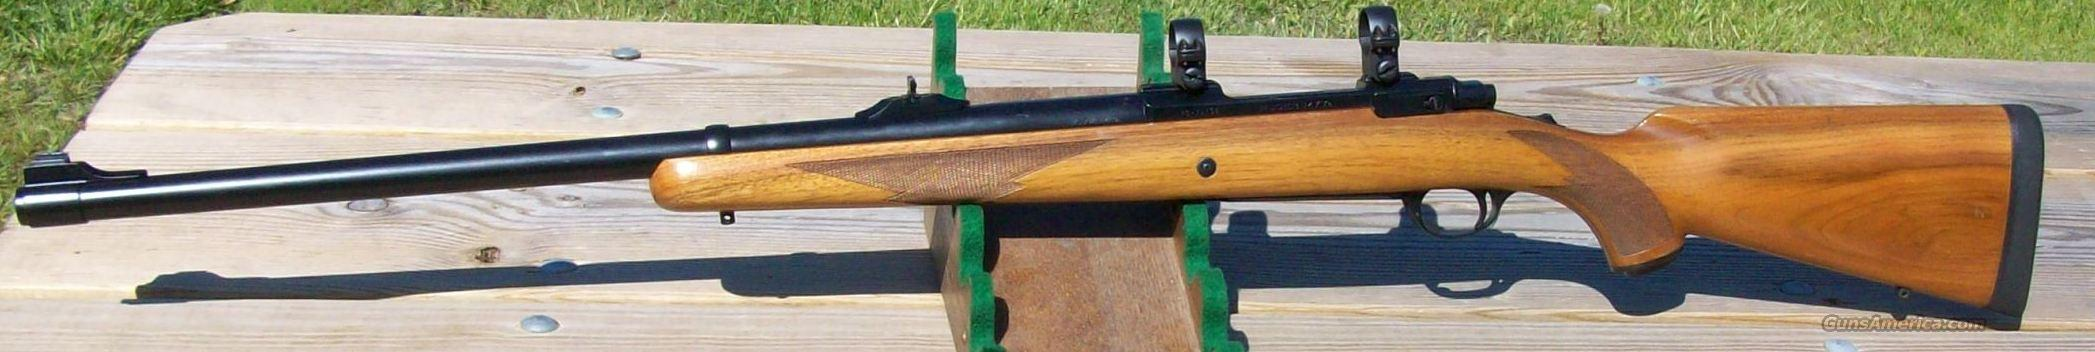 Ruger M77   Guns > Rifles > Ruger Rifles > Model 77